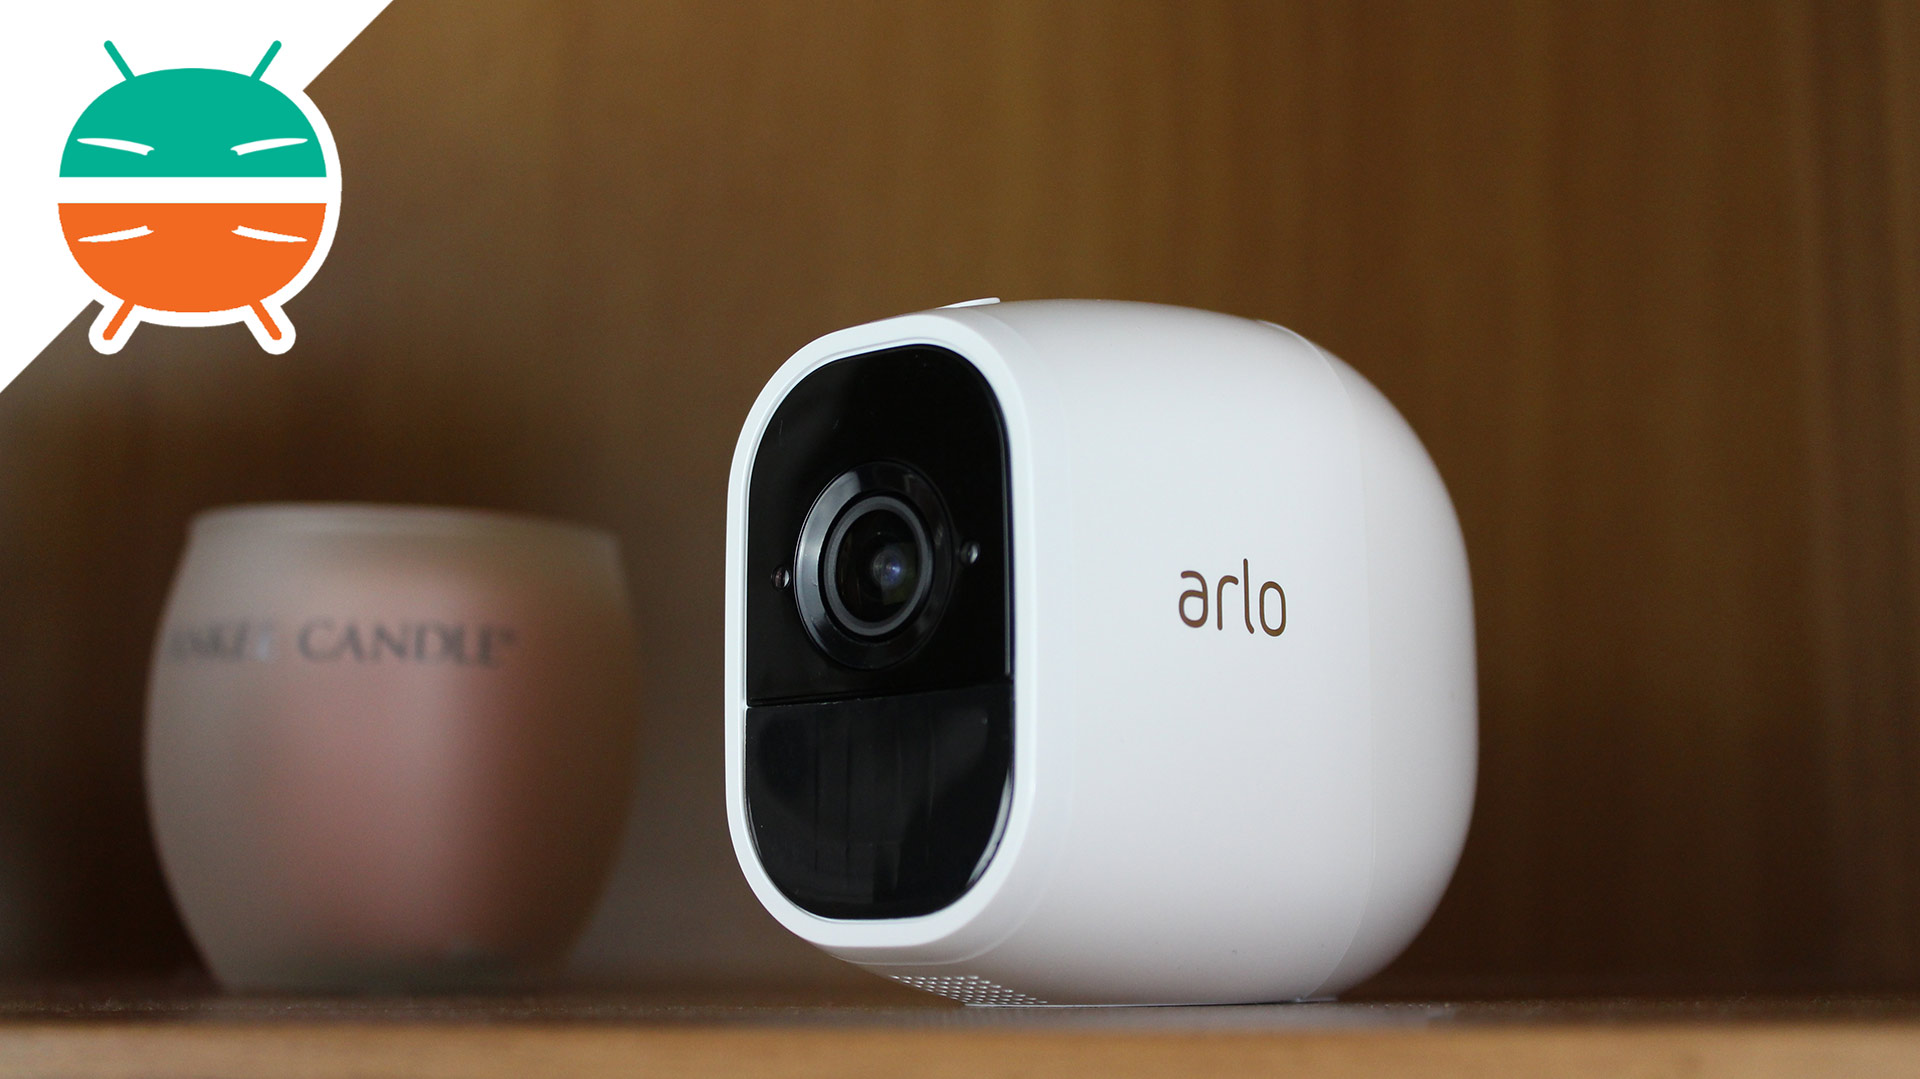 recensione arlo pro 2 videocamera di sicurezza wireless. Black Bedroom Furniture Sets. Home Design Ideas